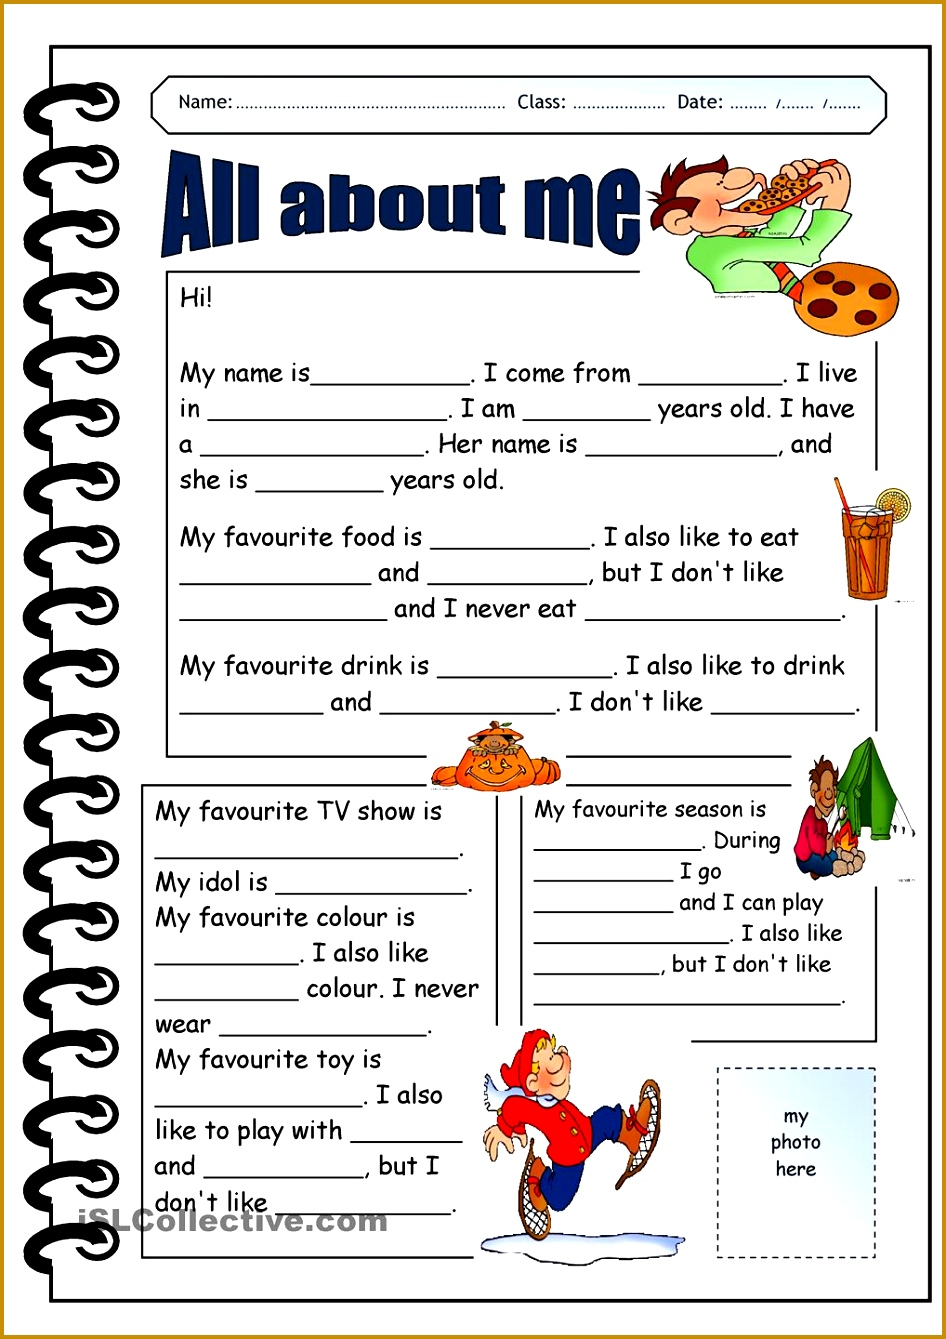 all about me printable worksheets Google Search 1339946